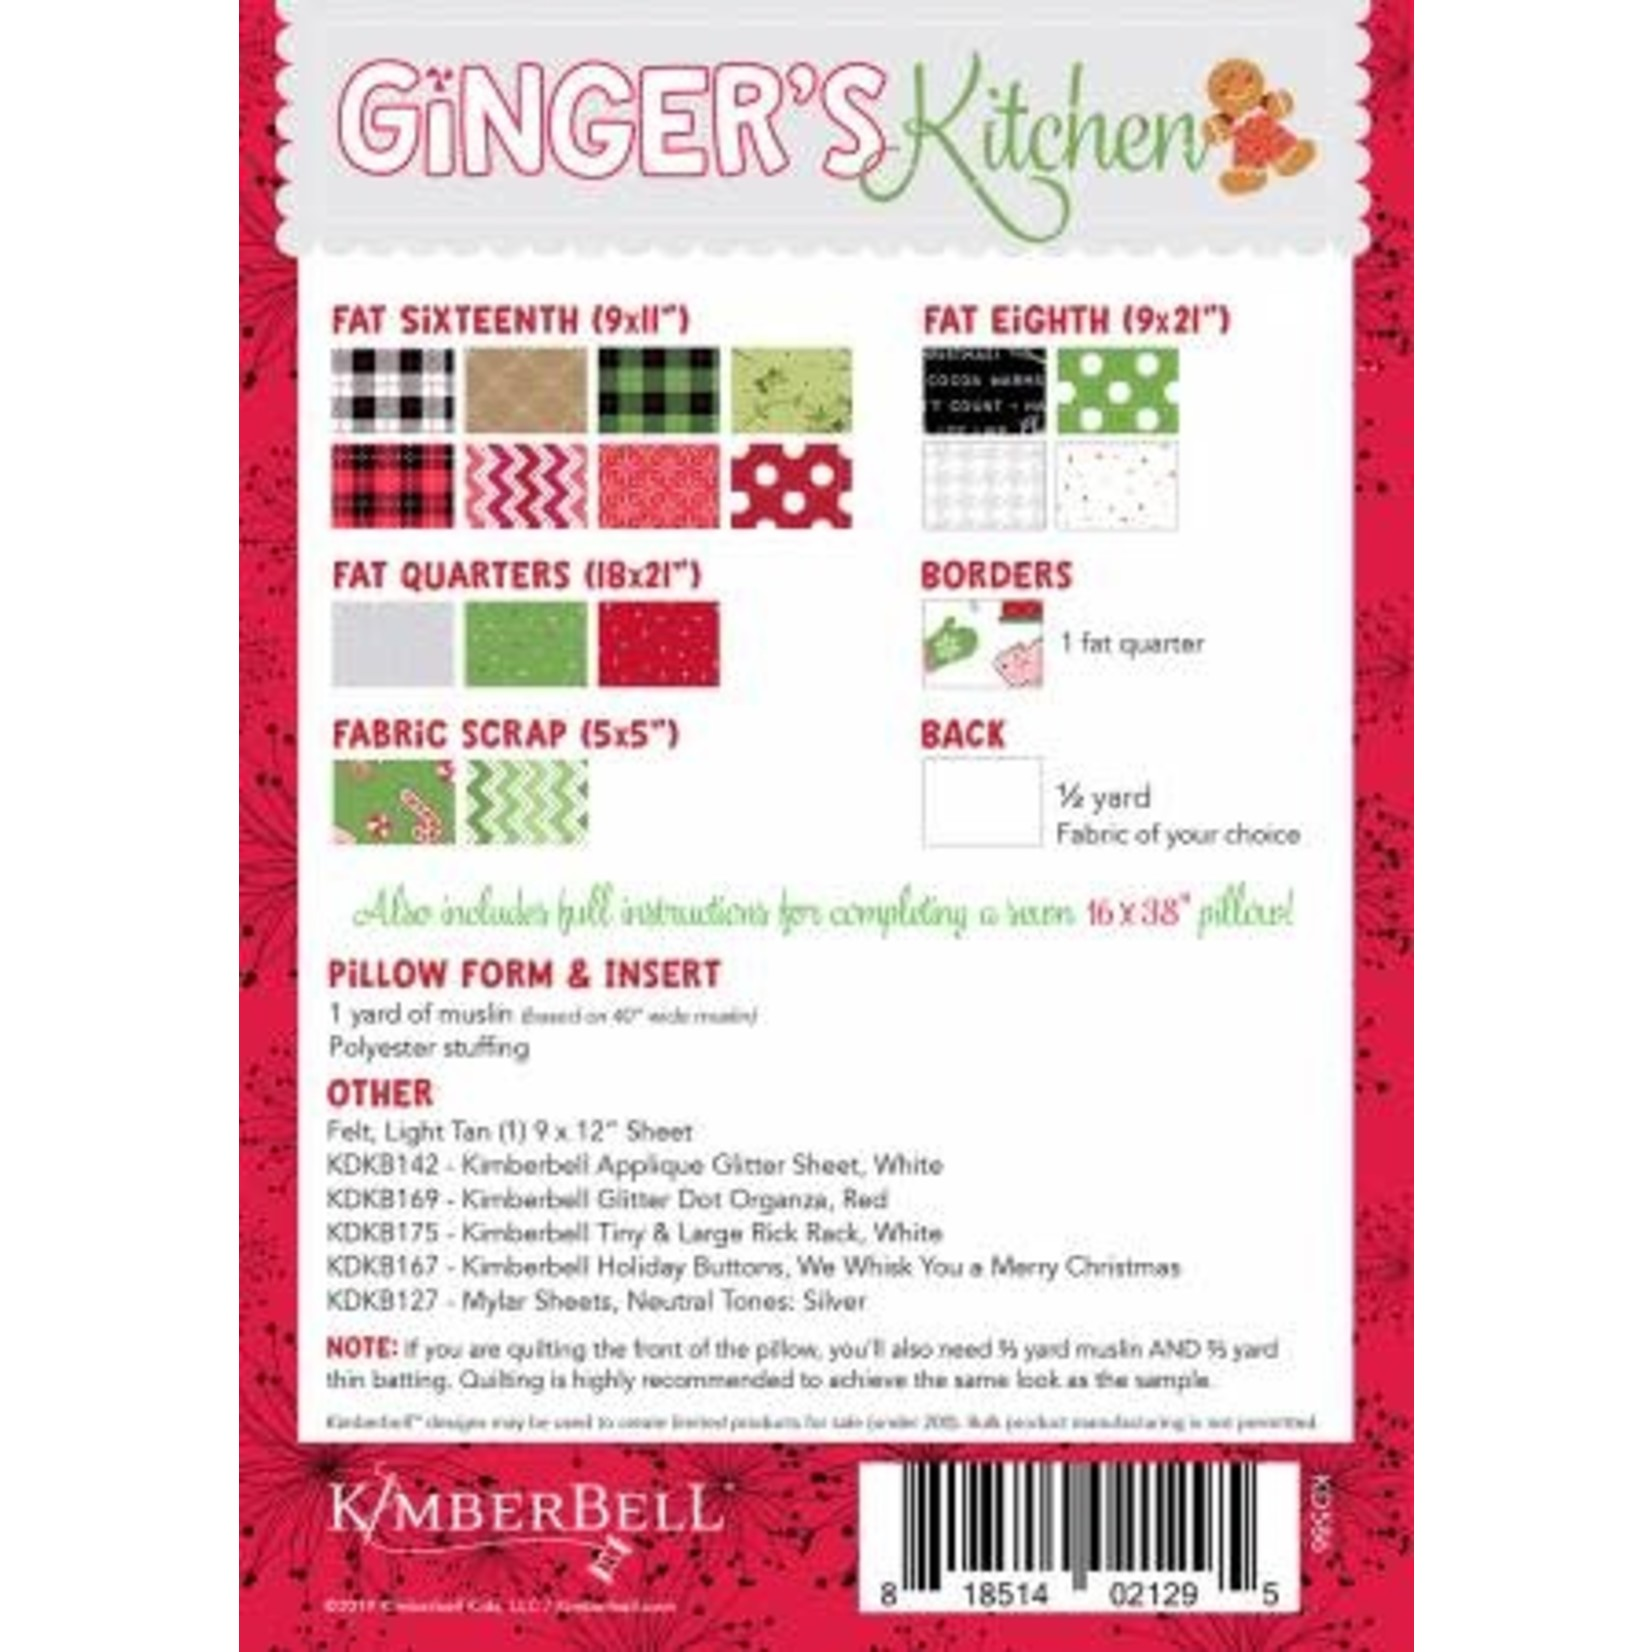 KIMBERBELL DESIGNS Ginger's Kitchen Bench Pillow, Machine Embroidery Version